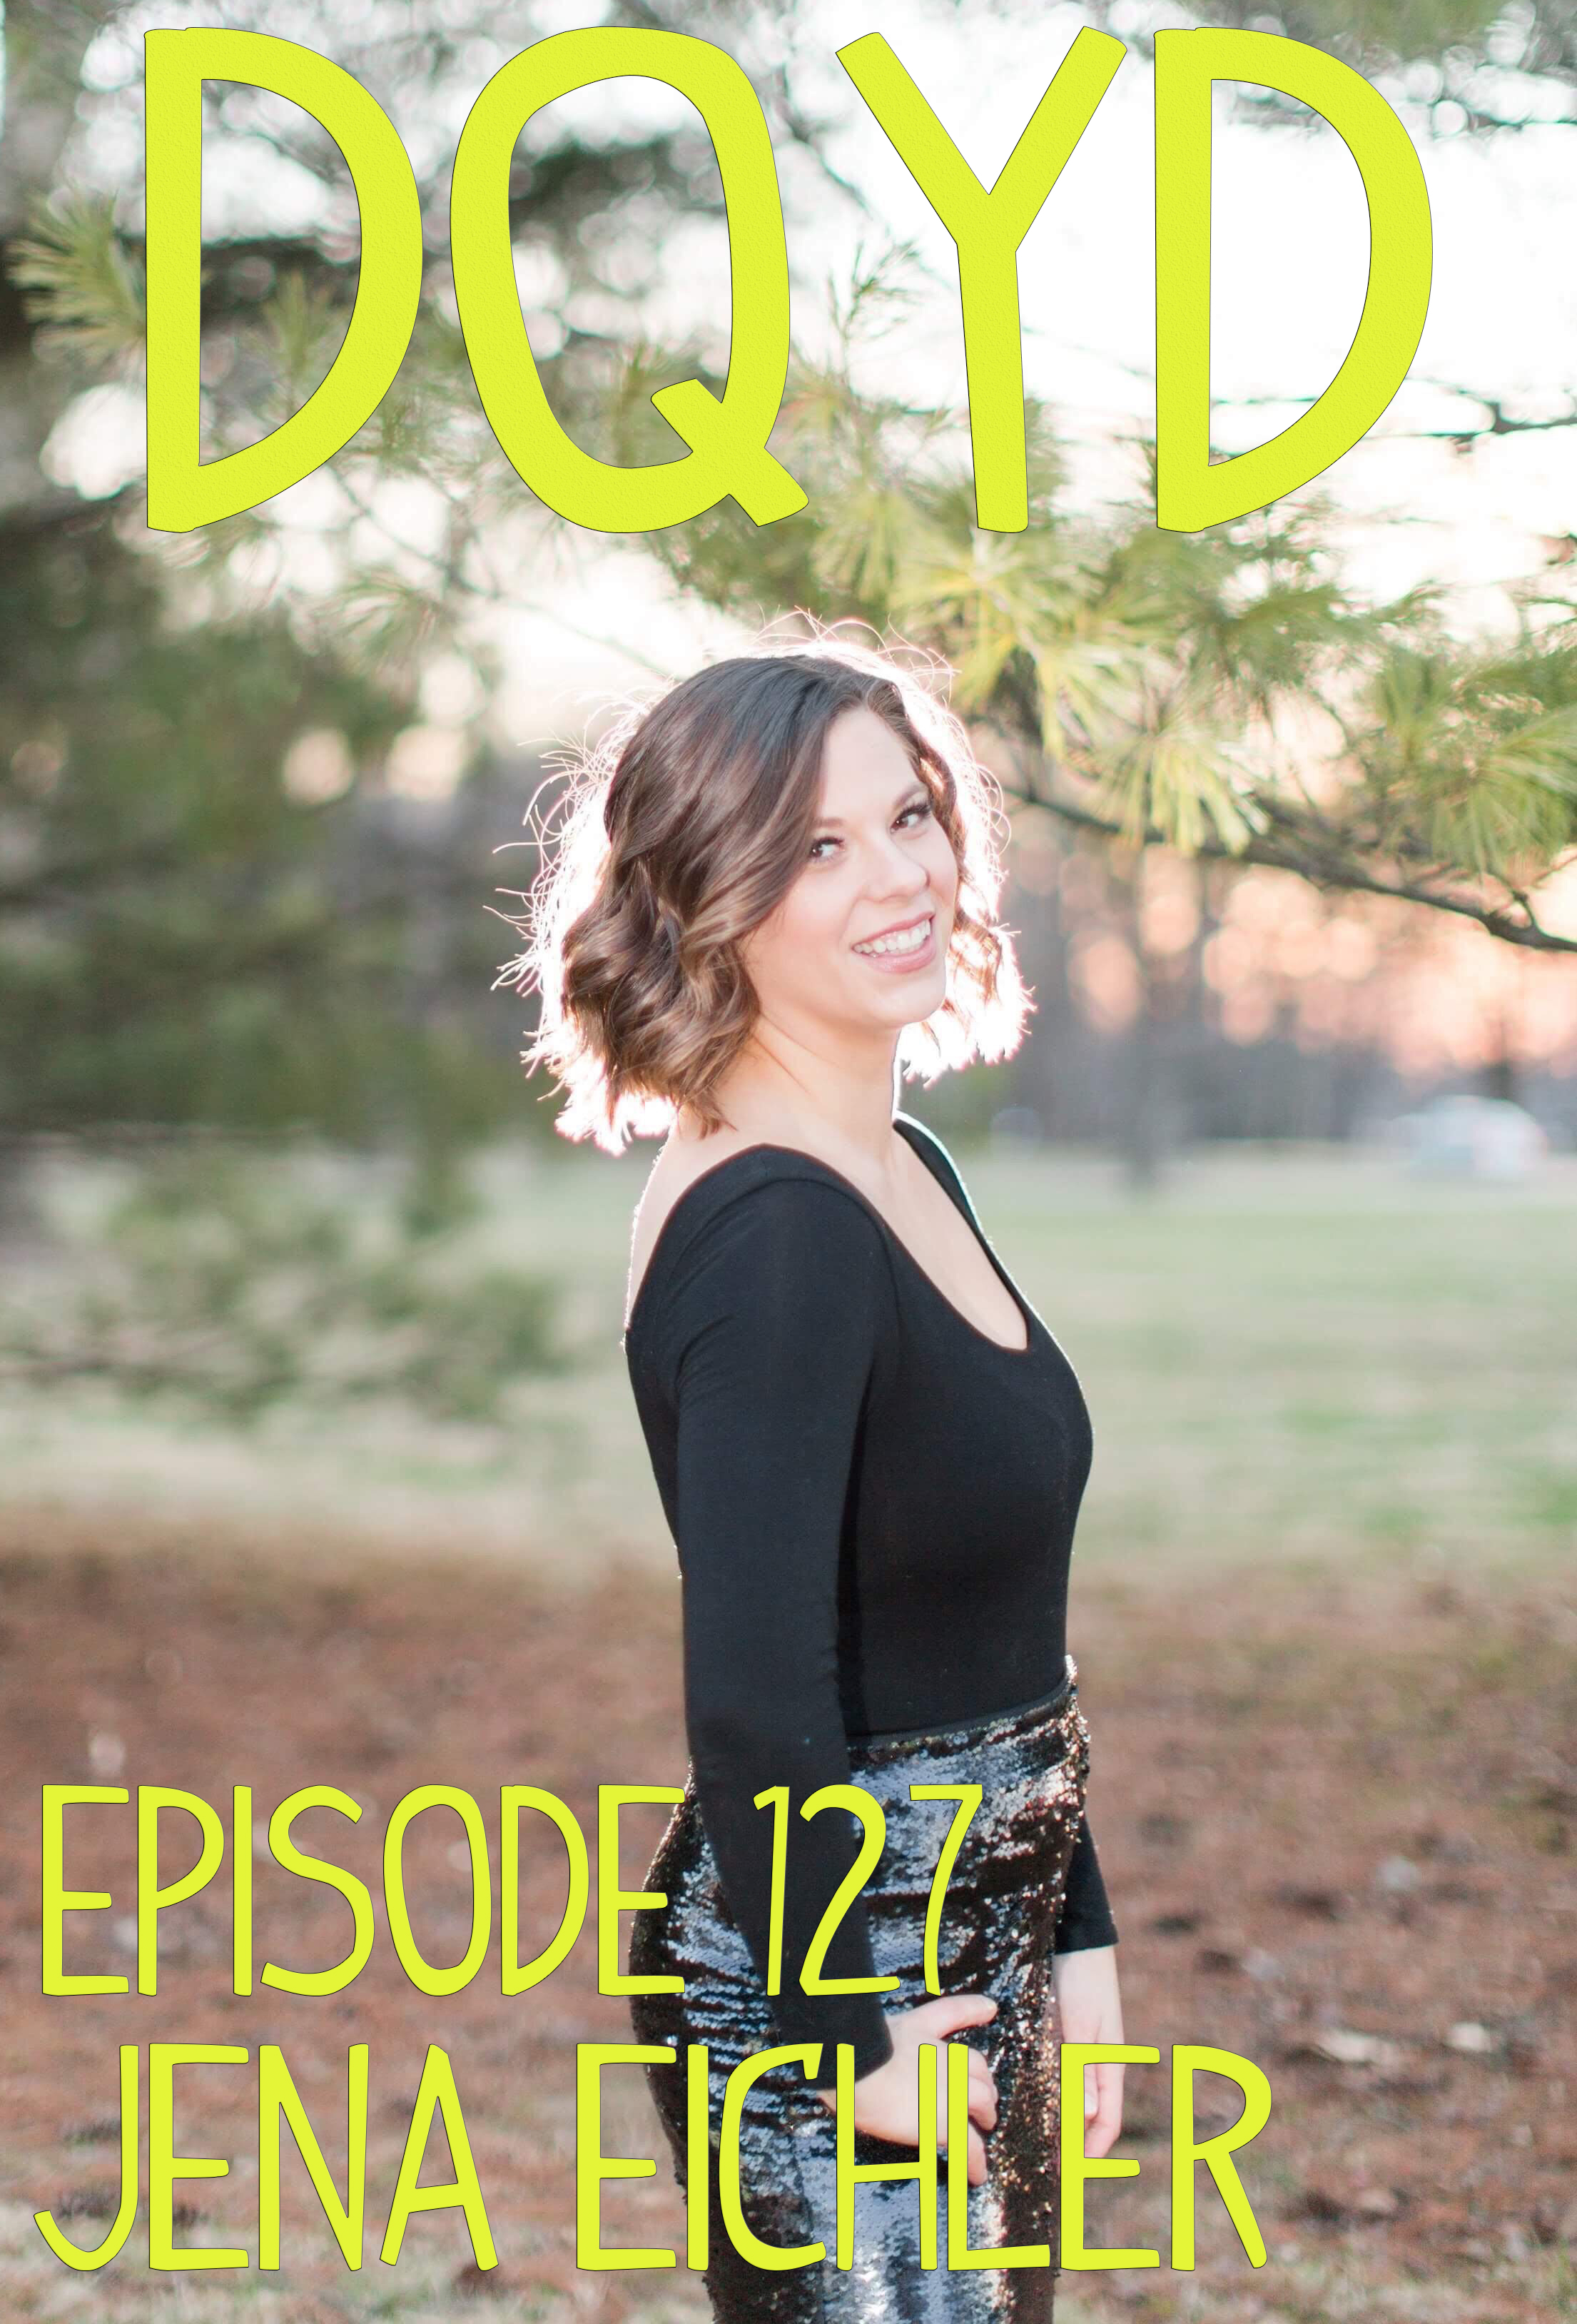 Episode 127 with Event Planner: Jena Eichler of River Top Event Coordinating! Some people panic and fold under pressure of preparing for a big event, that's why were lucky to have people like Jena who thrive in those scenarios. As the owner and operator of River Top Event Coordinating she is constantly helping others plan weddings, birthday parties and more. Listen in for helpful tips to get your life organized and keep it cool when it matters the most!  https://www.rivertopeventcoord.com/?fbclid=IwAR1VTWG6sPIRuIVu_kQm0T51YQLSJgNdJv3B_7zWfCqcFWh4iwUe17yUnVI